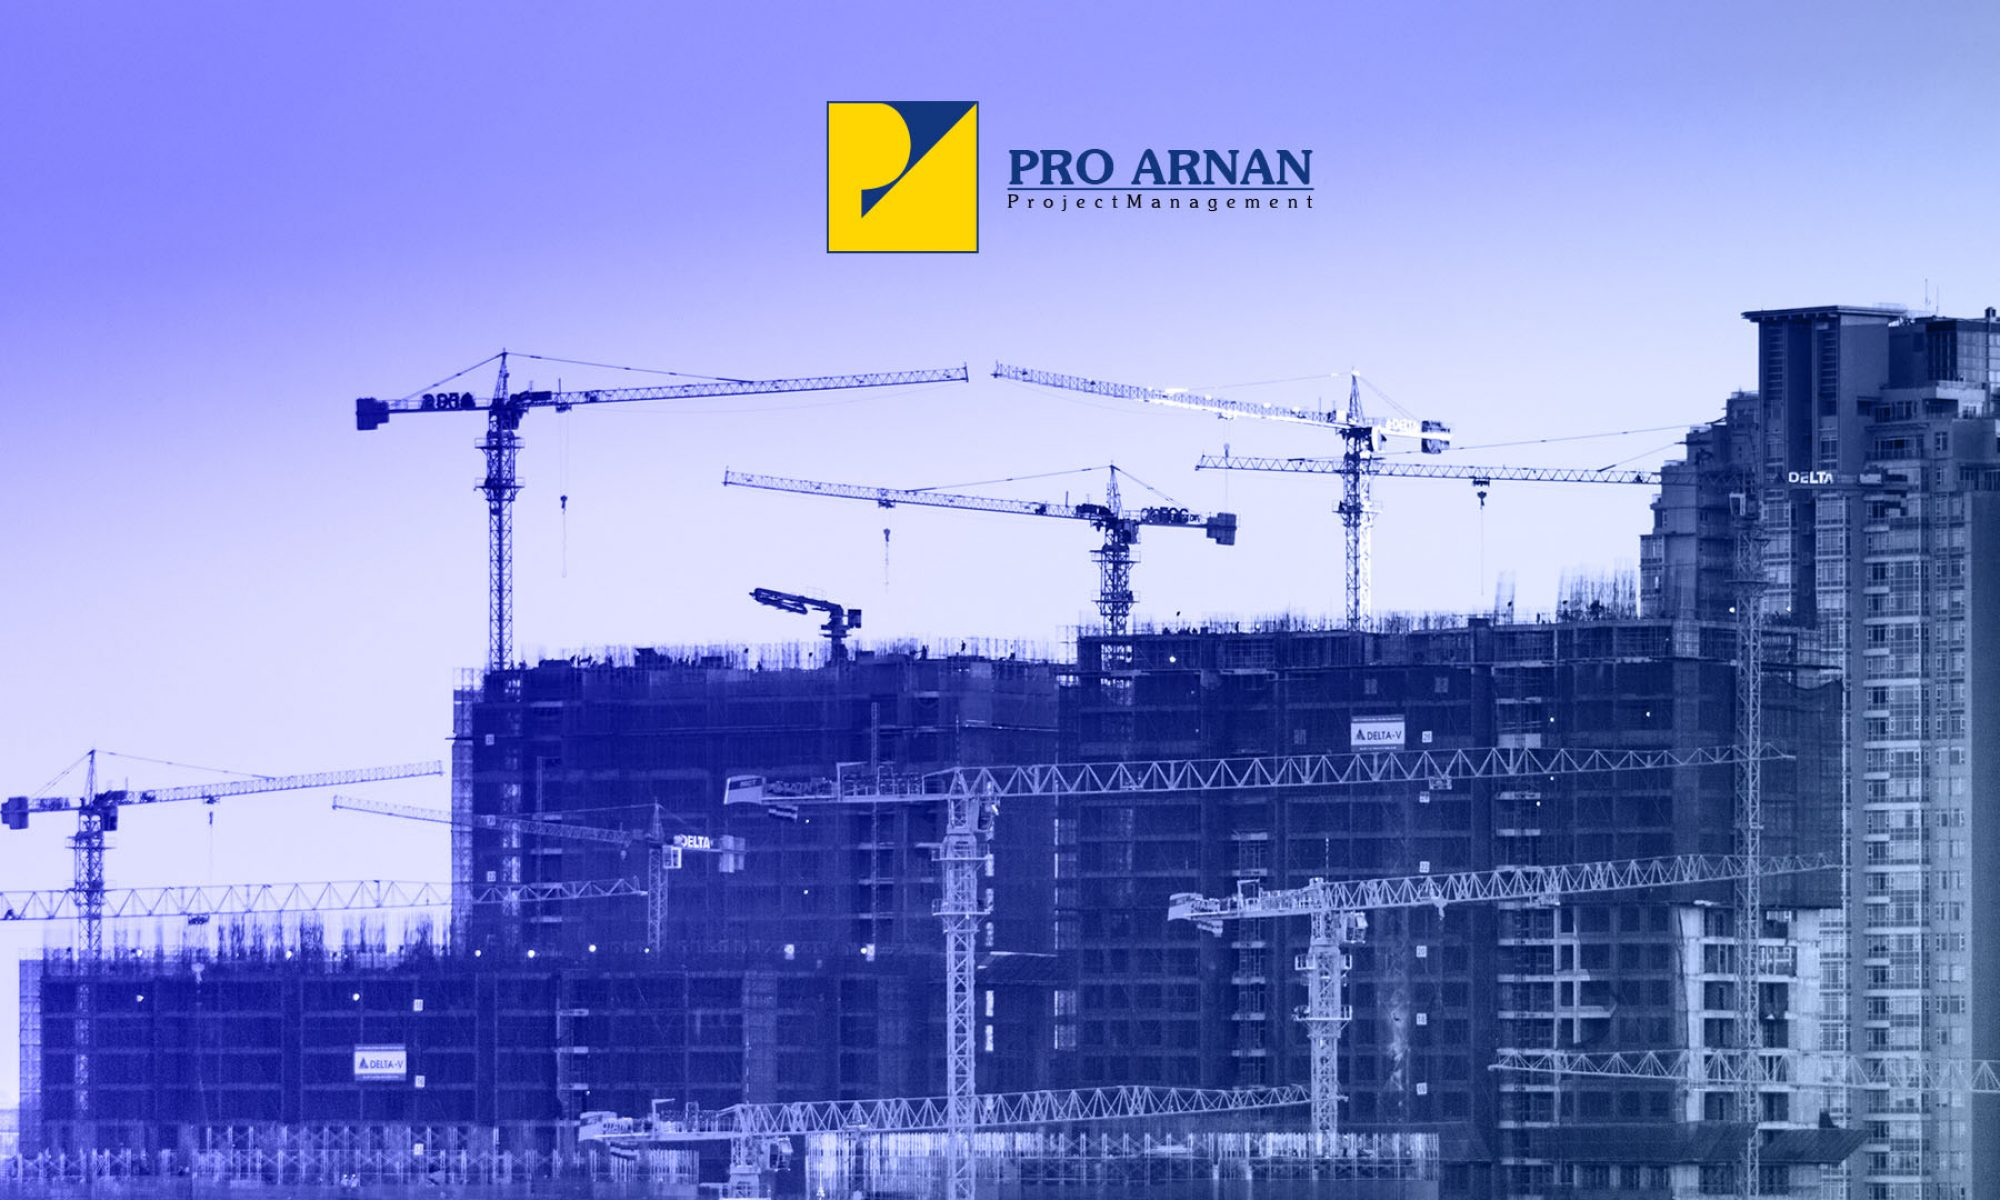 Pro Arnan Project Managent